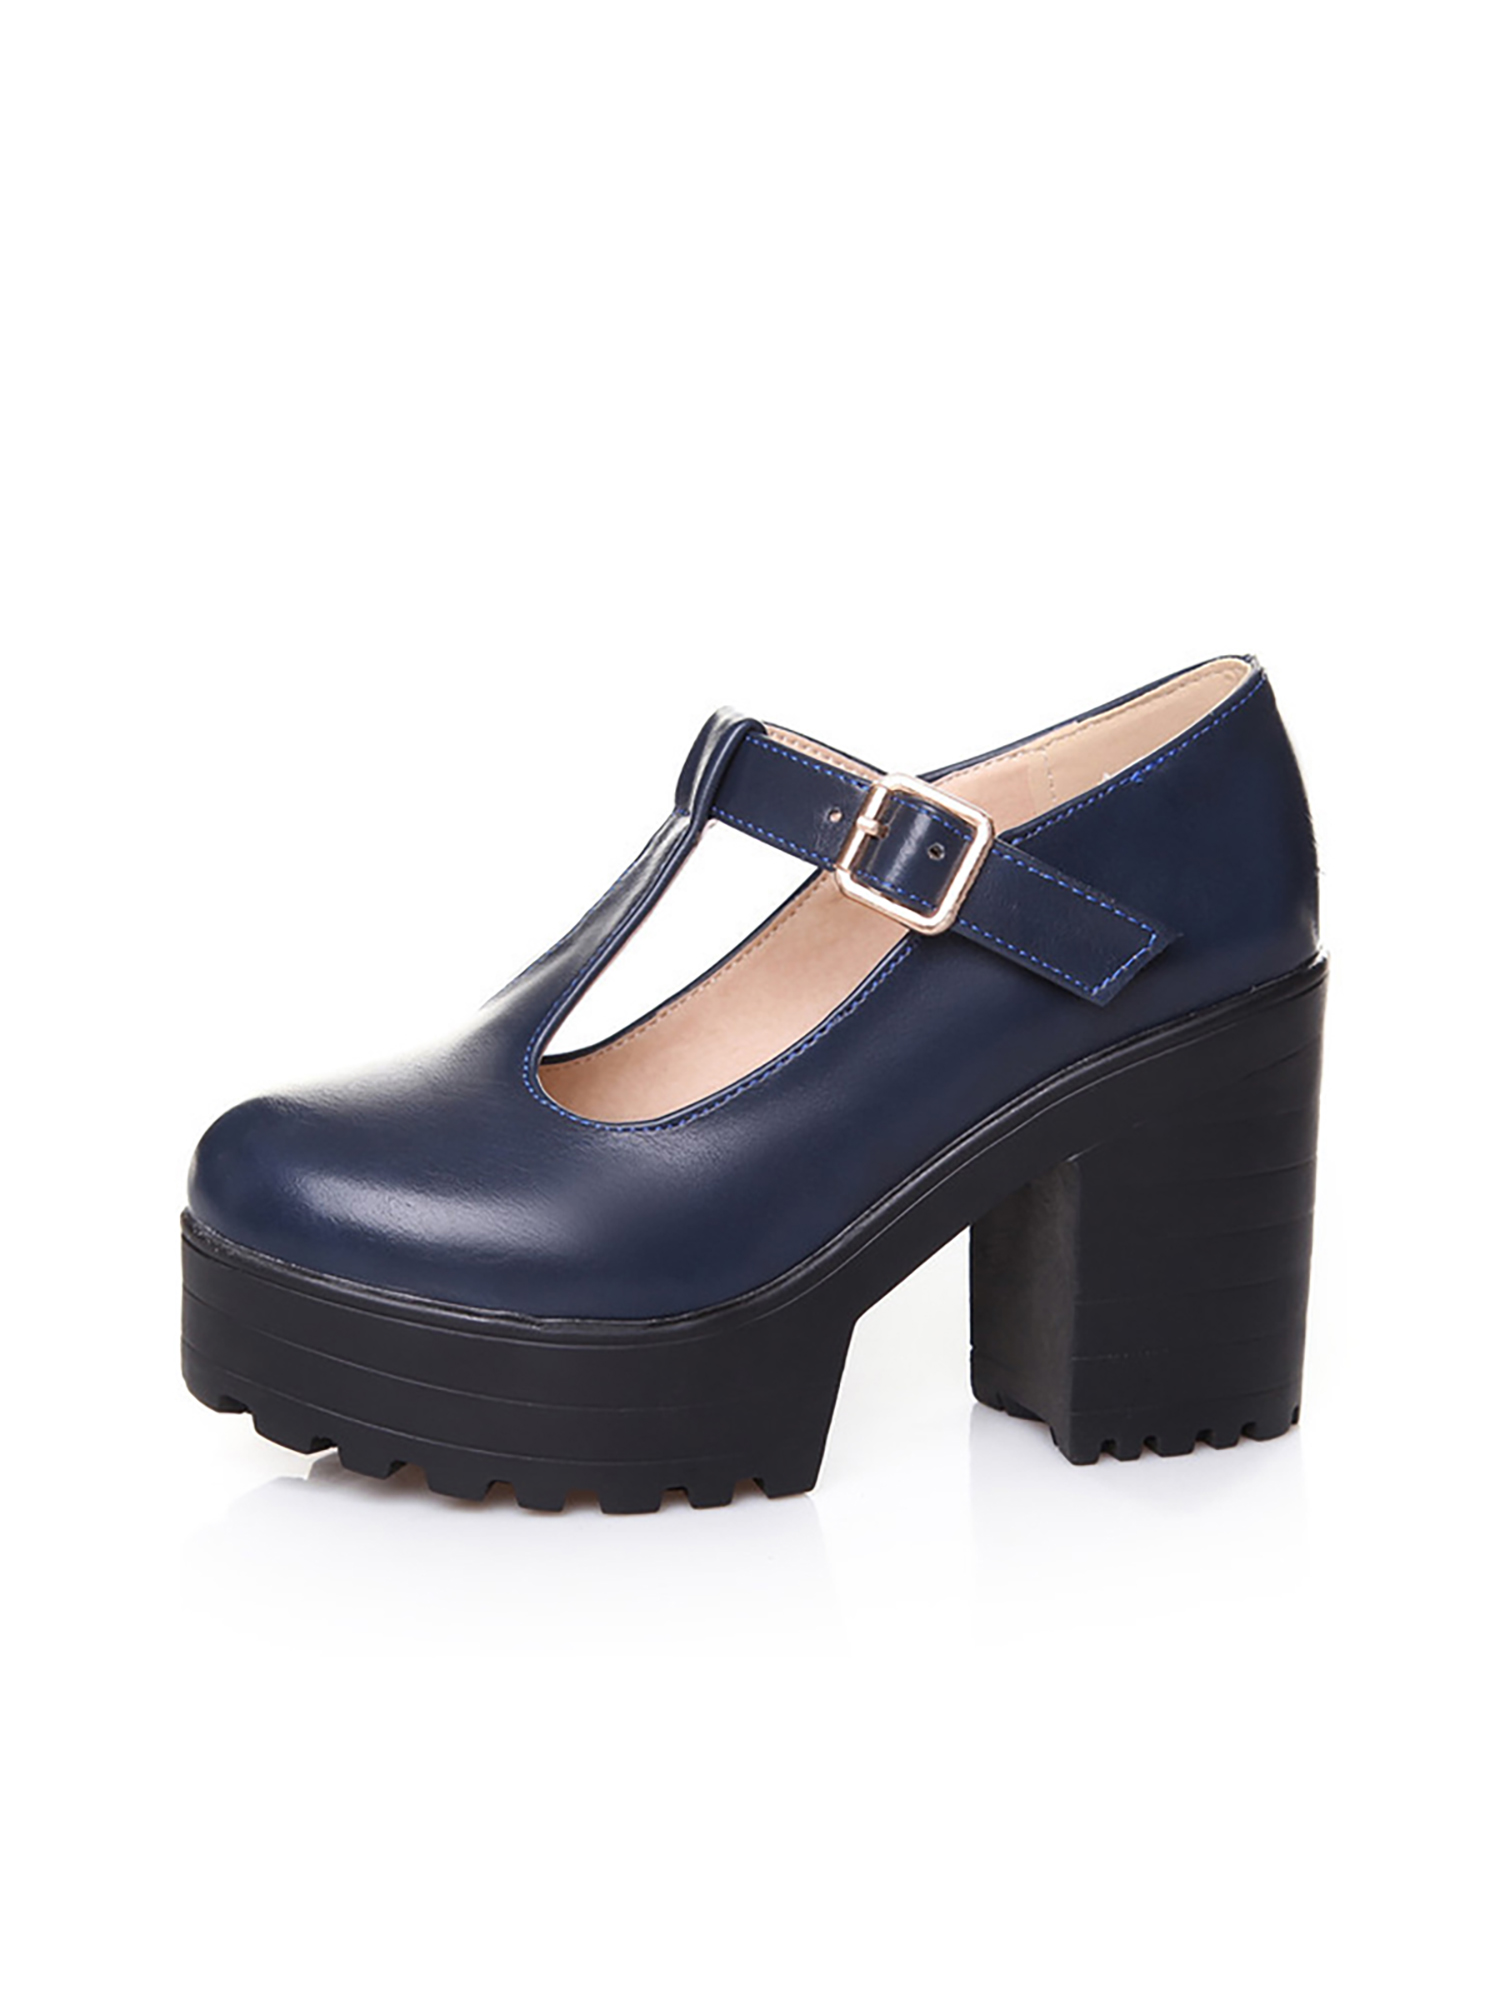 Details about  /Women/'s Retro Buckle Stud Block Heel Round Toe Red Wedding Bridal Ankle Boots L